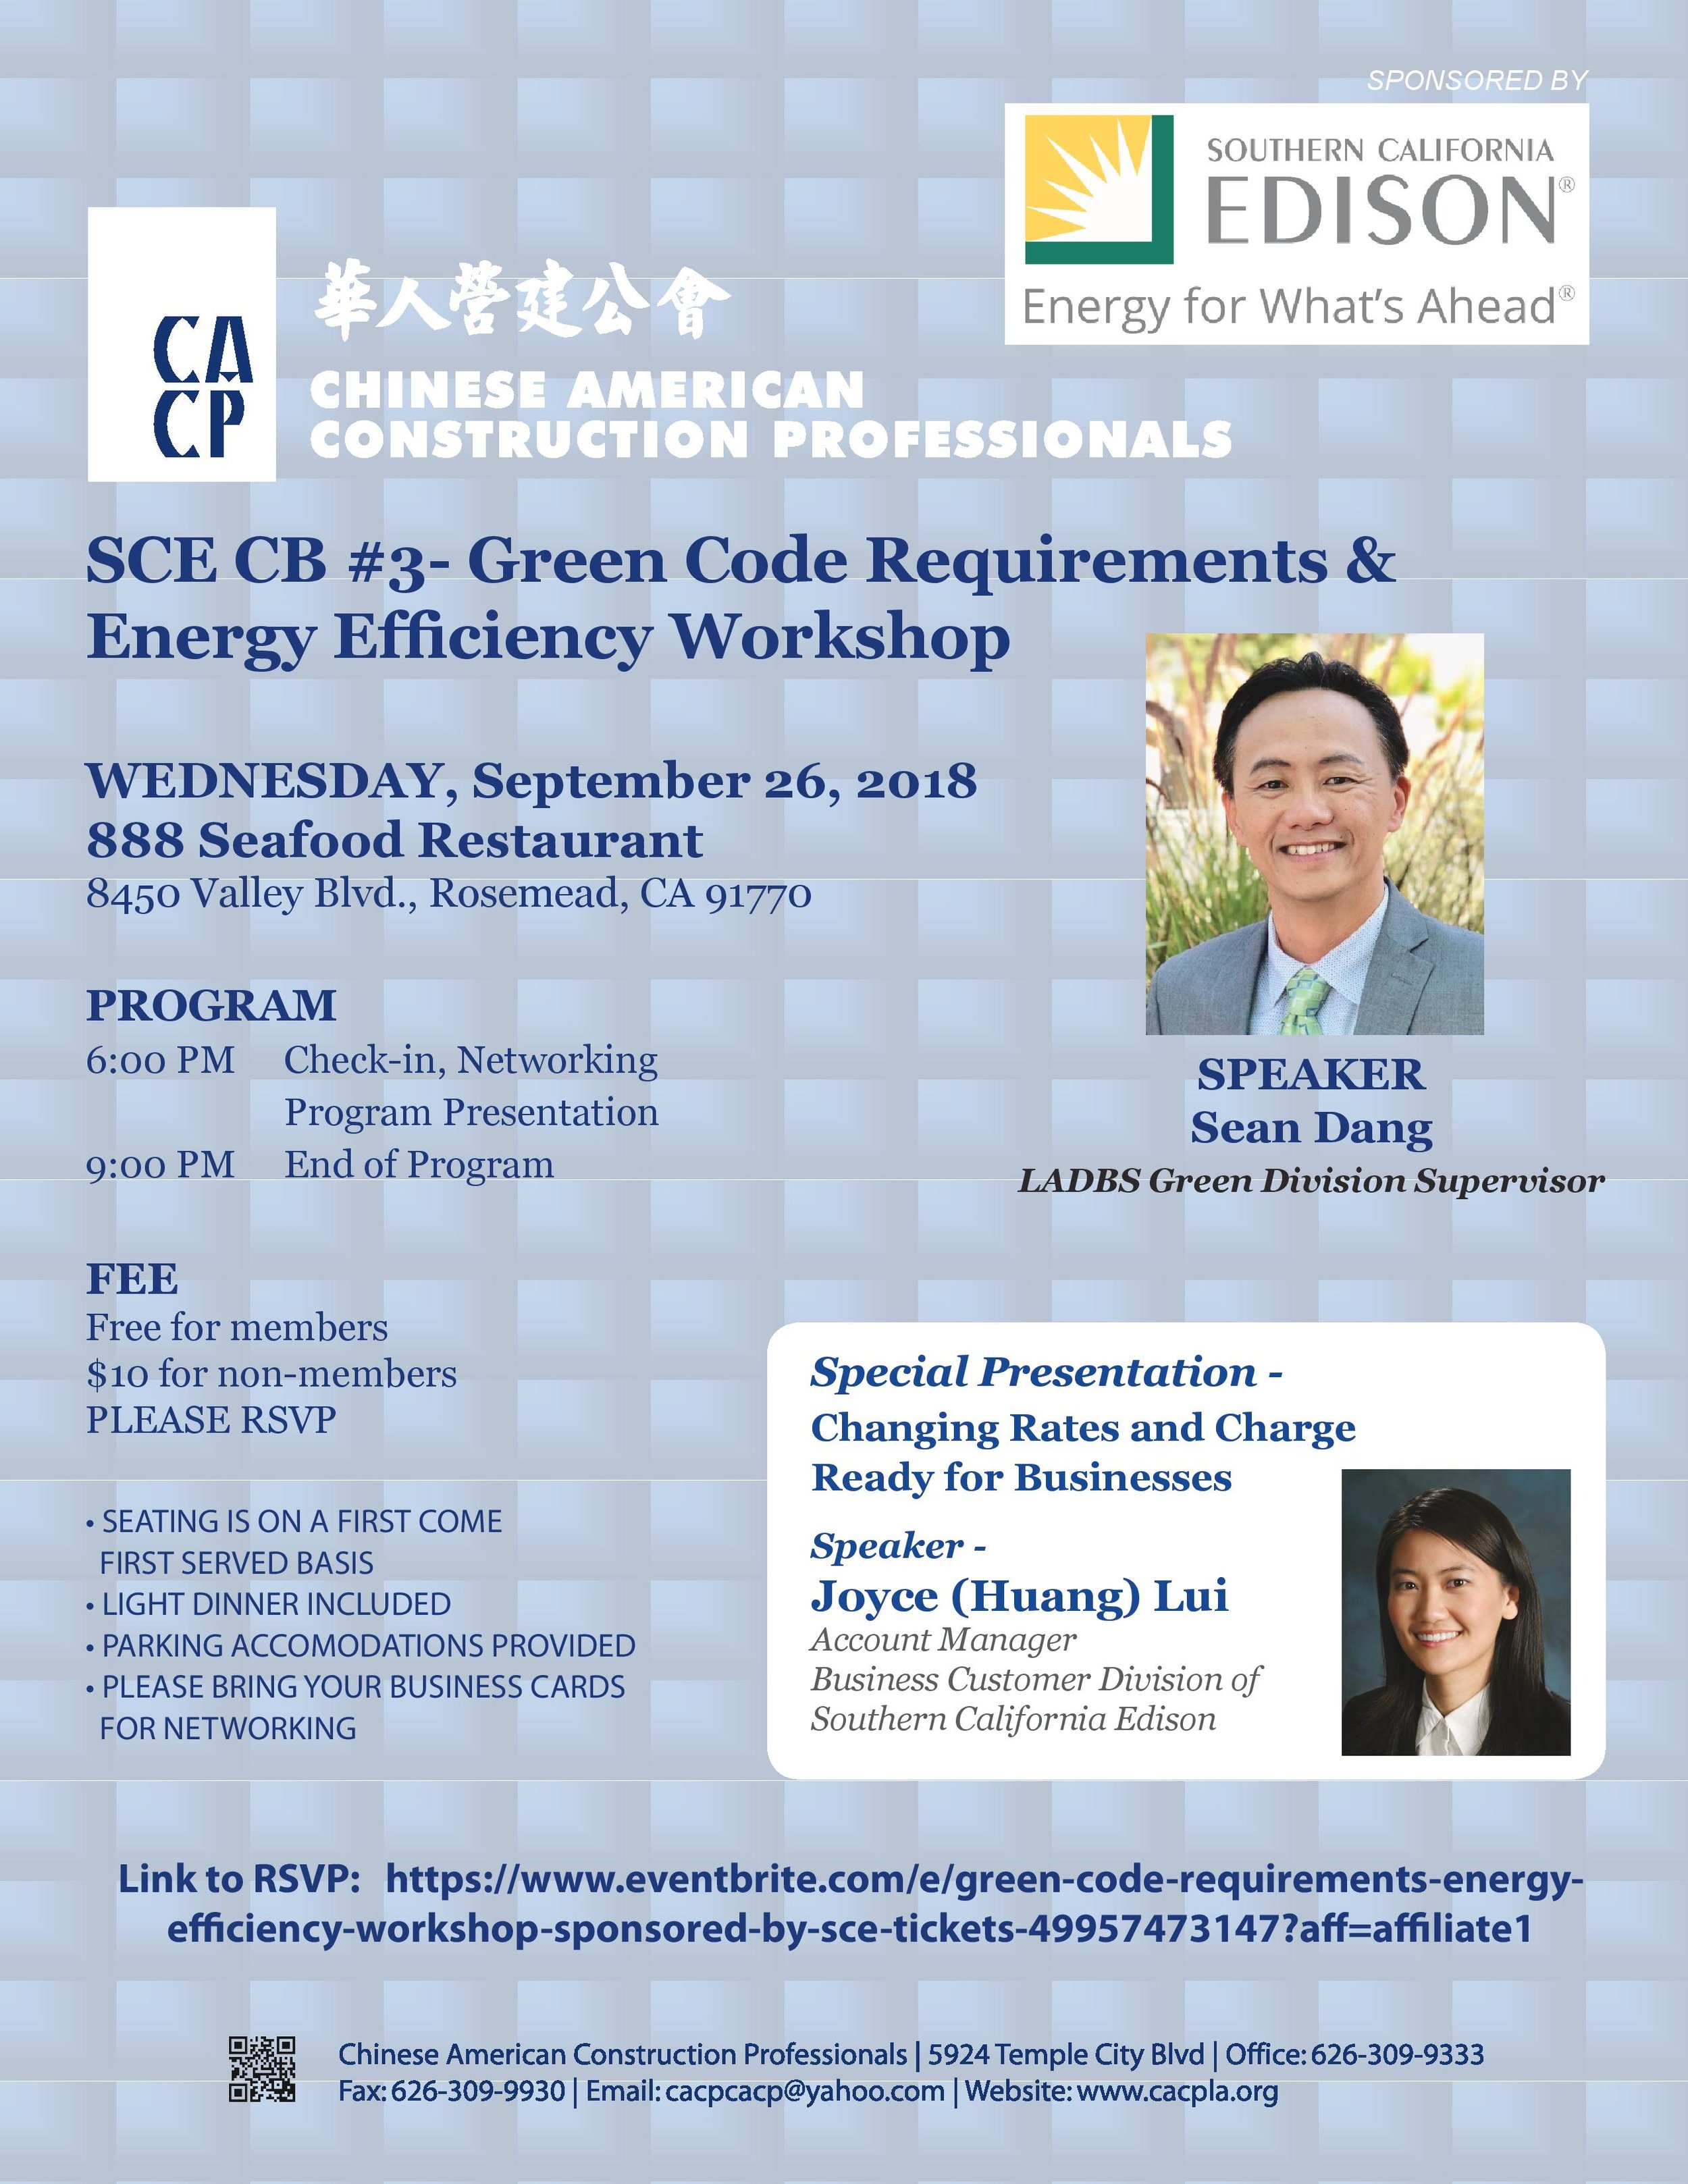 Cacp green code requirements & Energy efficiency workshop - September 26th, 2018